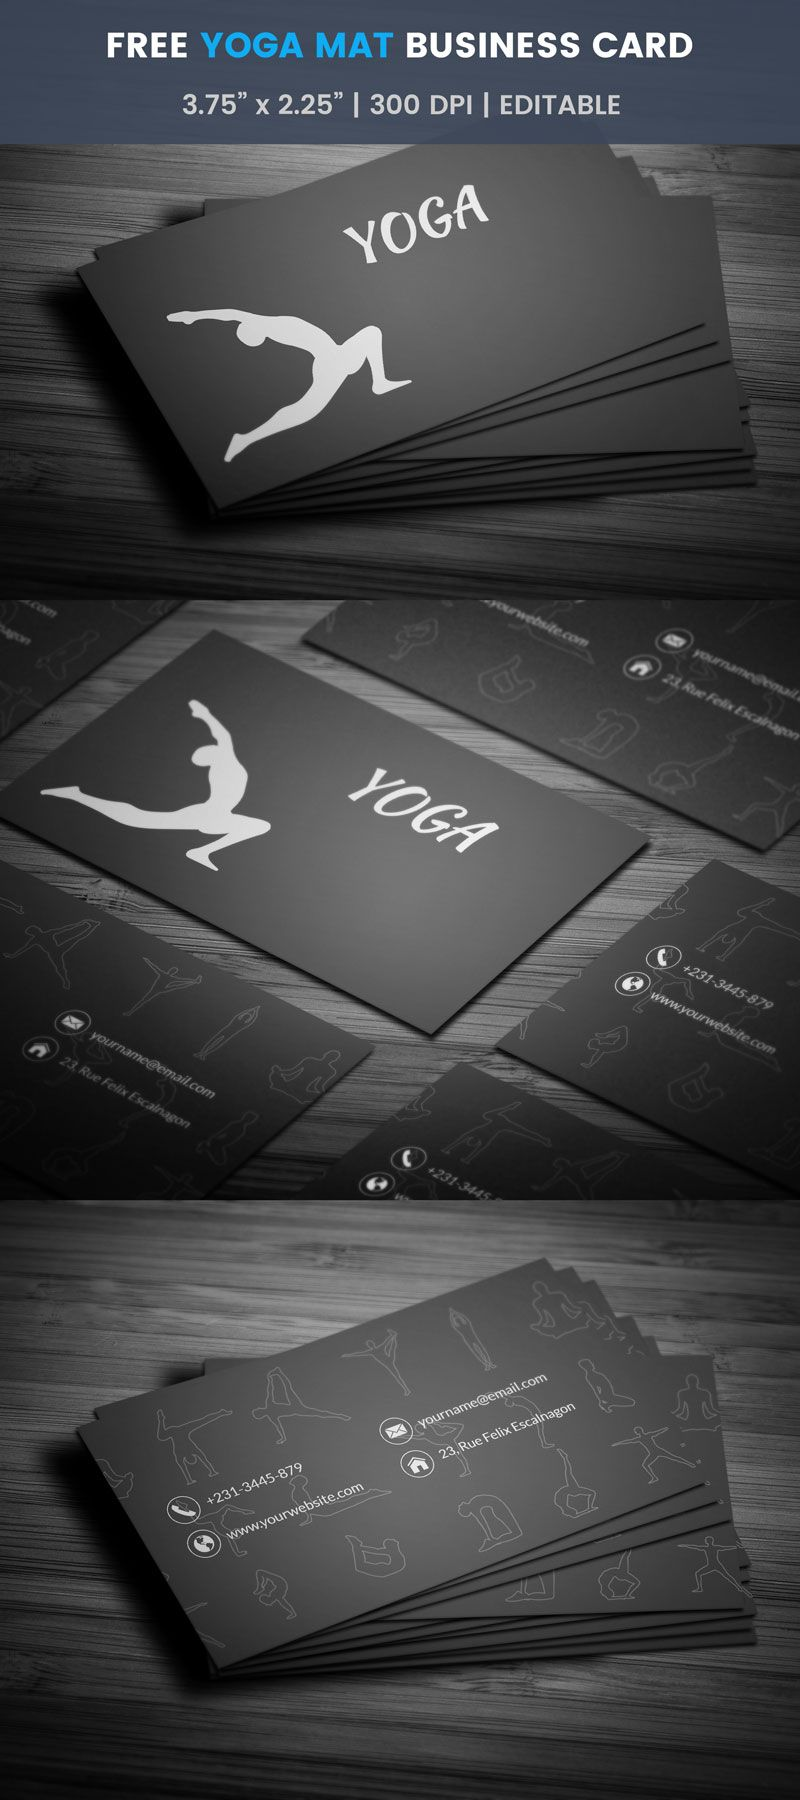 Free Yoga Mat Business Card | Business cards, Business and Card ...